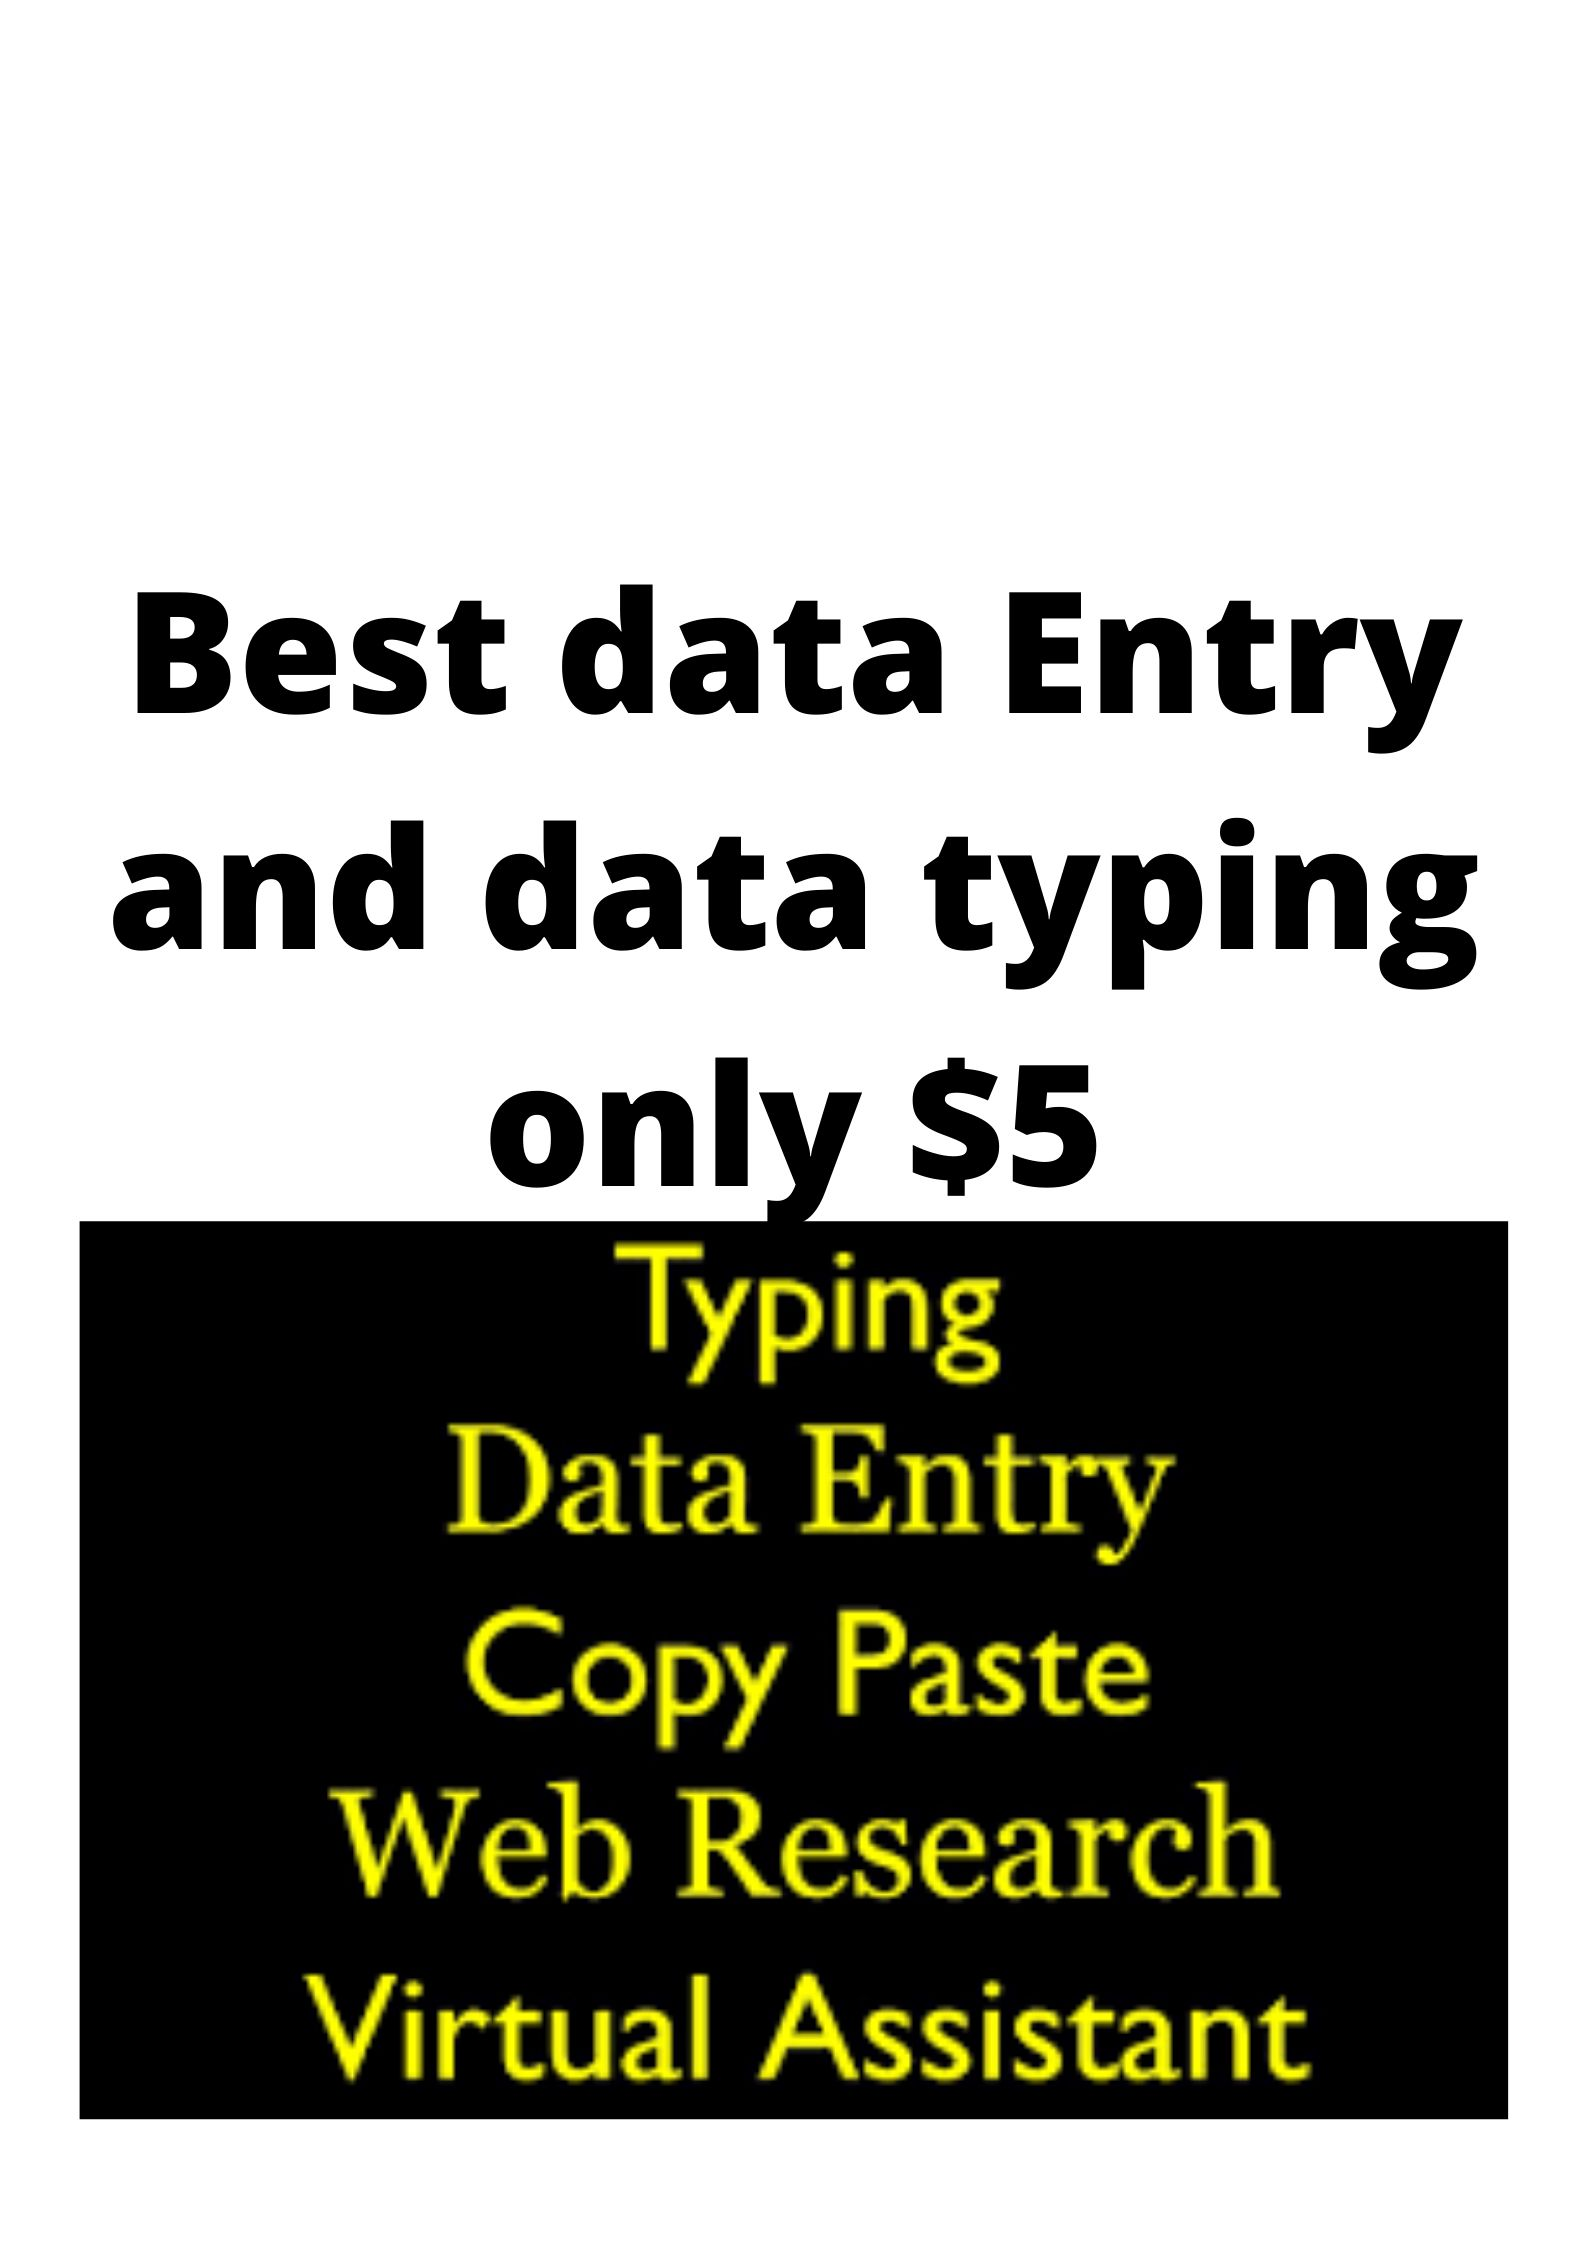 Best data Entry and data typing and editing